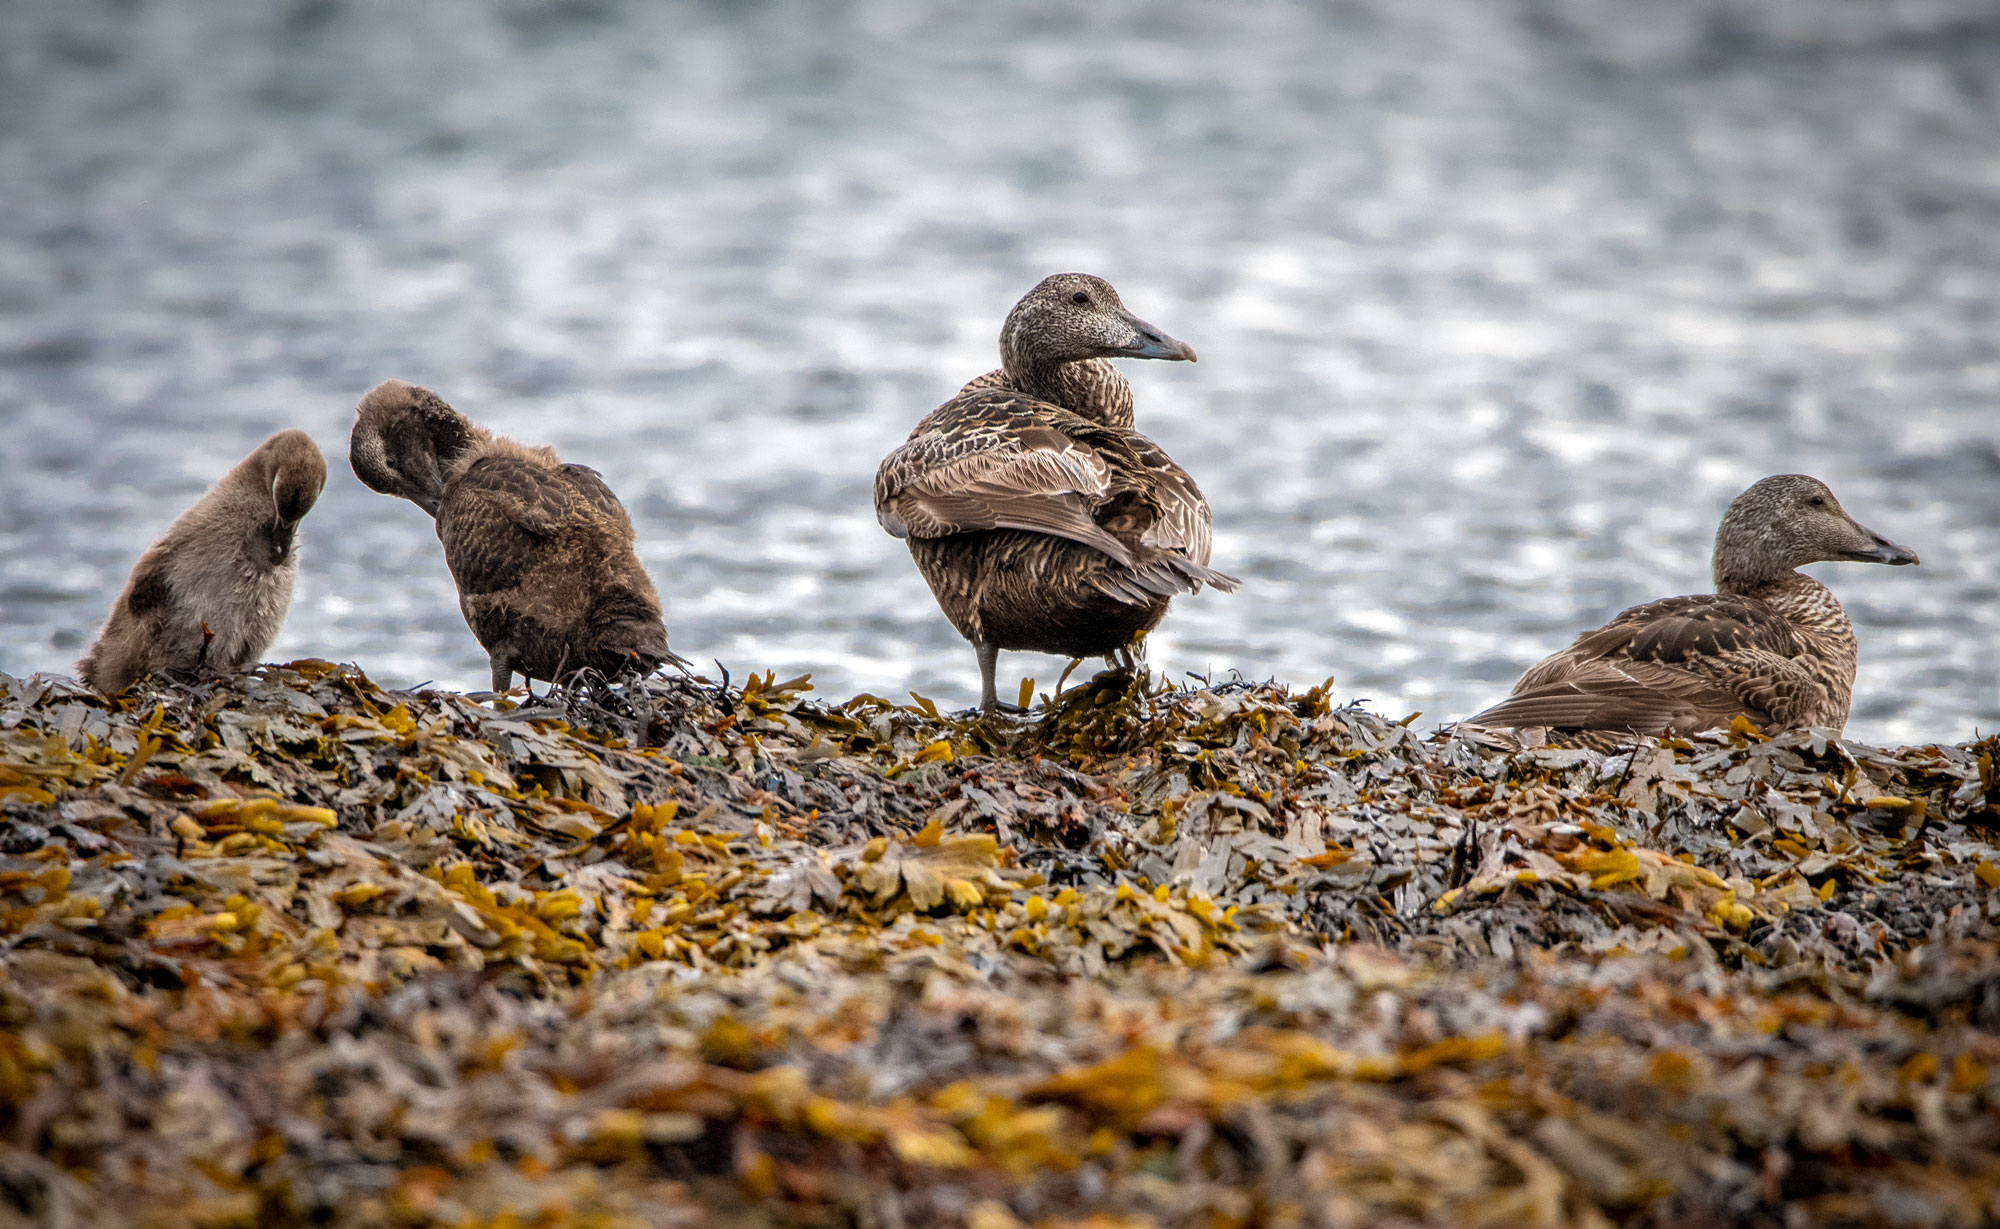 Eider duck females with chicks